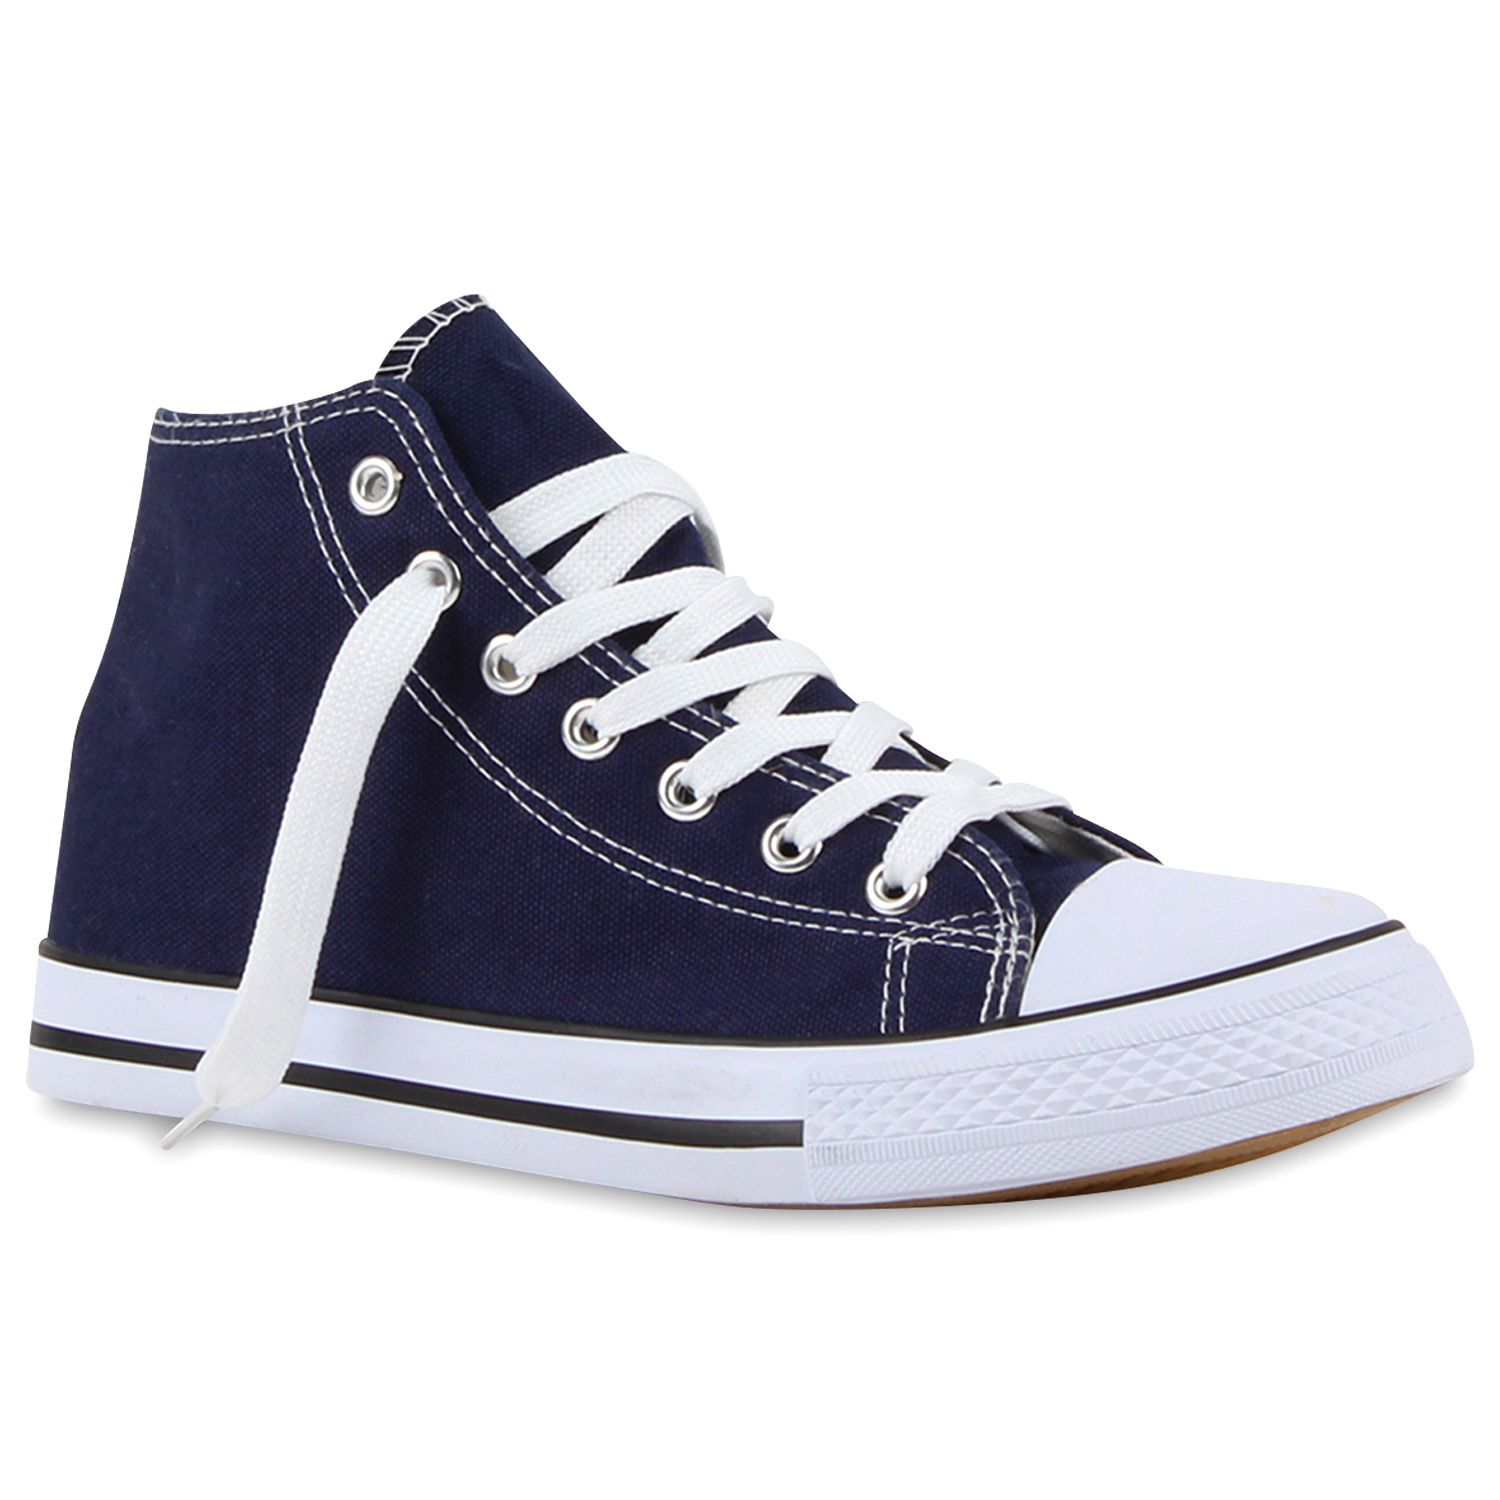 Damen Sneaker high - Dunkelblau